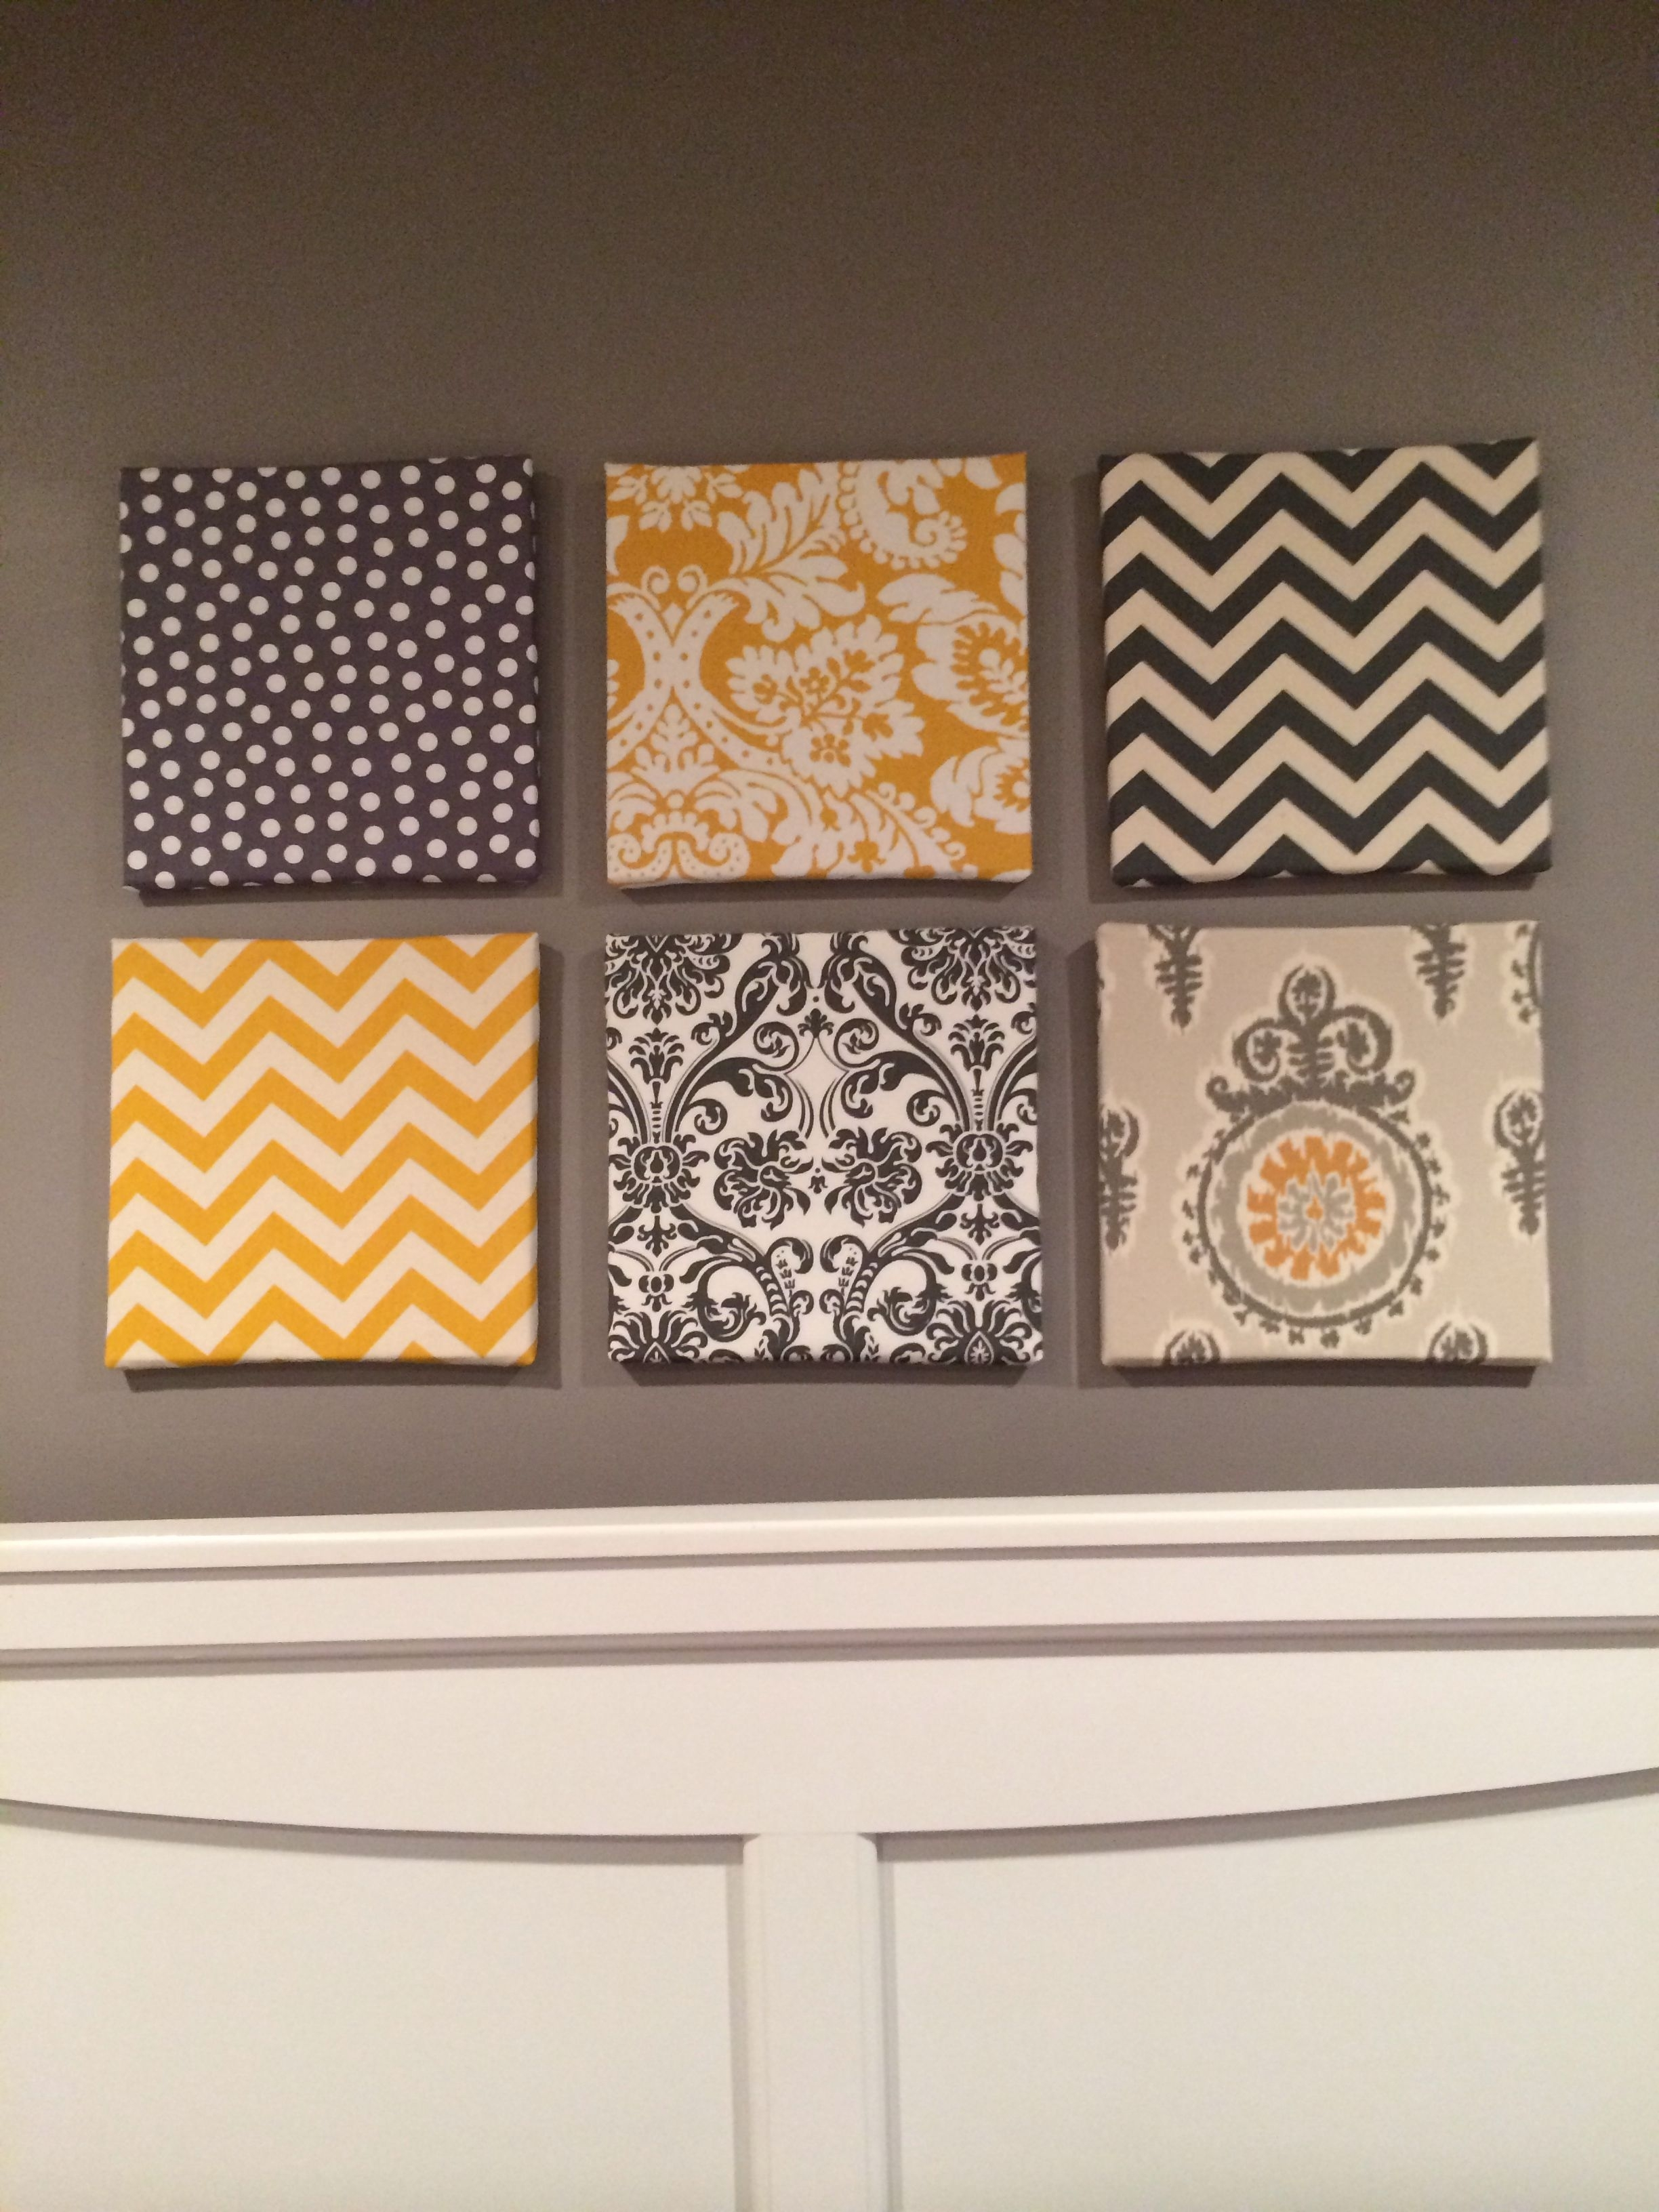 My Fabric Over Canvas Wall Art For My Gray And Yellow Themed Room In Newest Fabric For Canvas Wall Art (View 7 of 15)